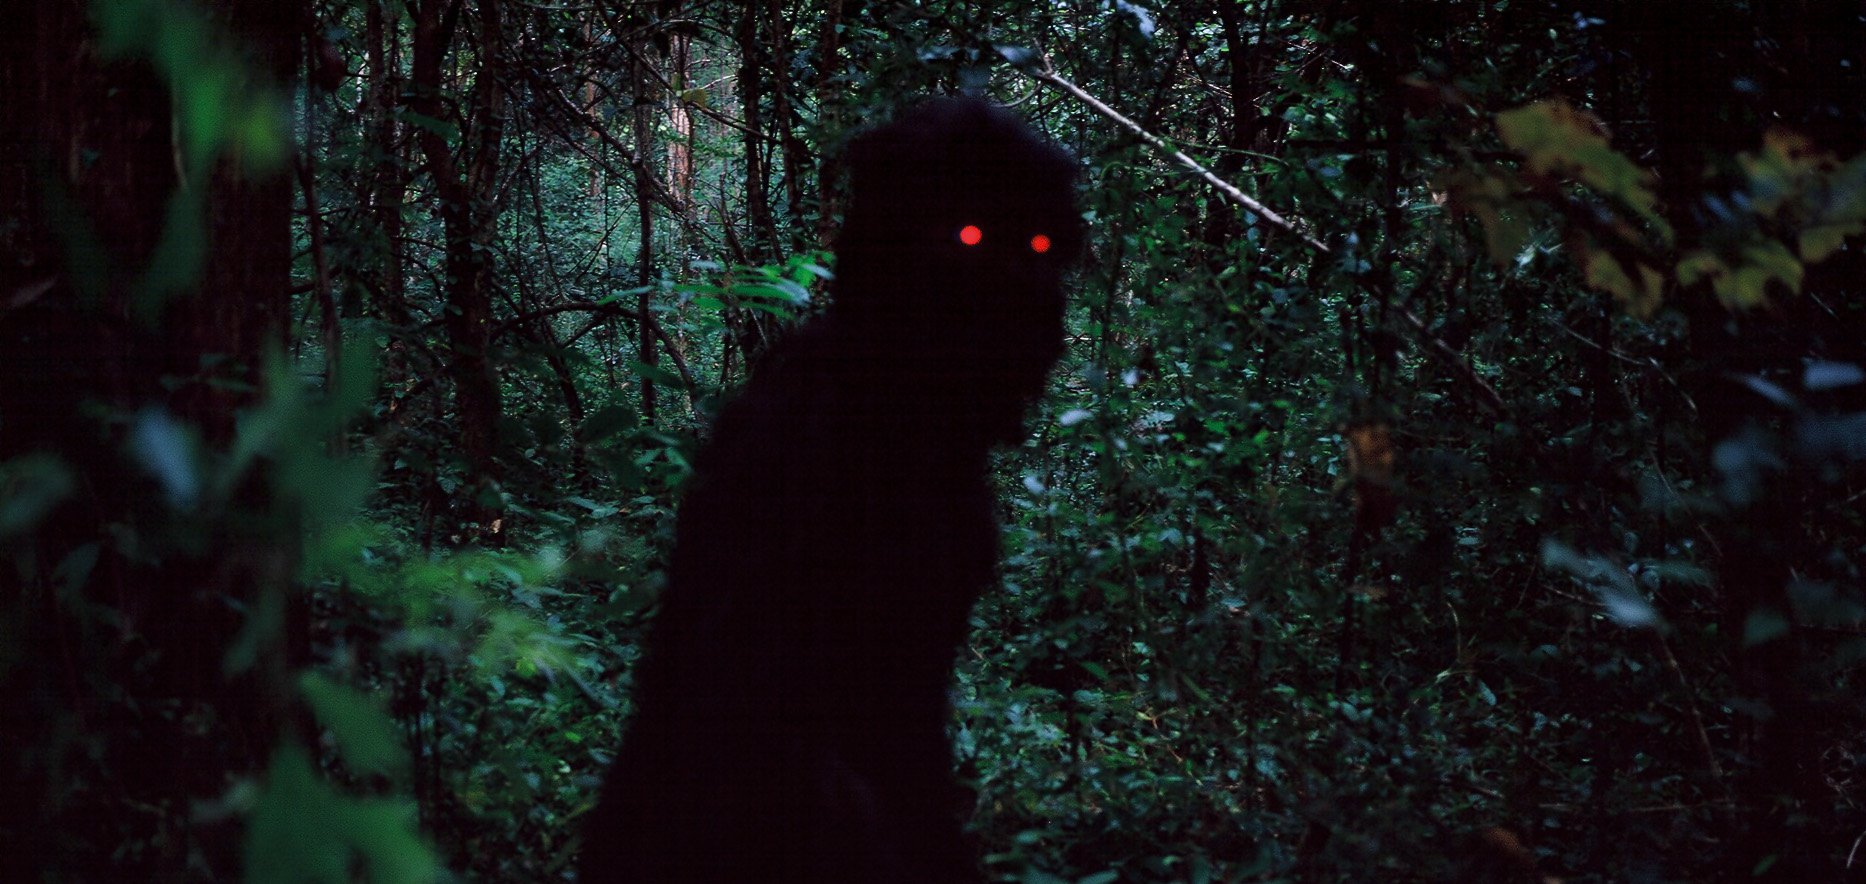 Still from Uncle Boonmee Who Can Recall His Past Lives (2010) -  silhouette in forest with red eyes